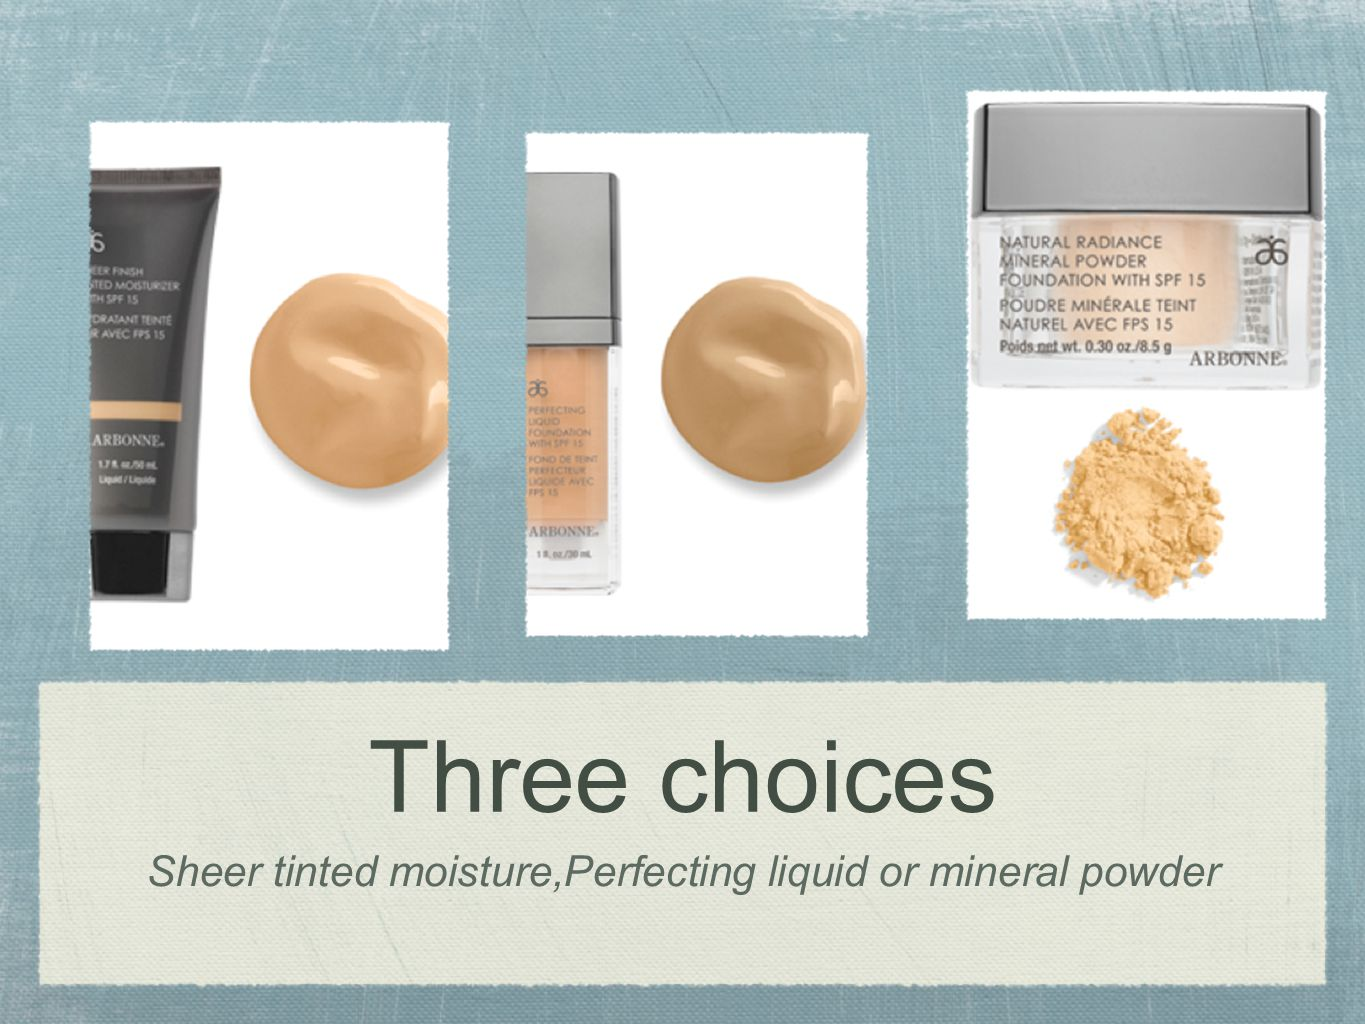 Sheer tinted moisture,Perfecting liquid or mineral powder